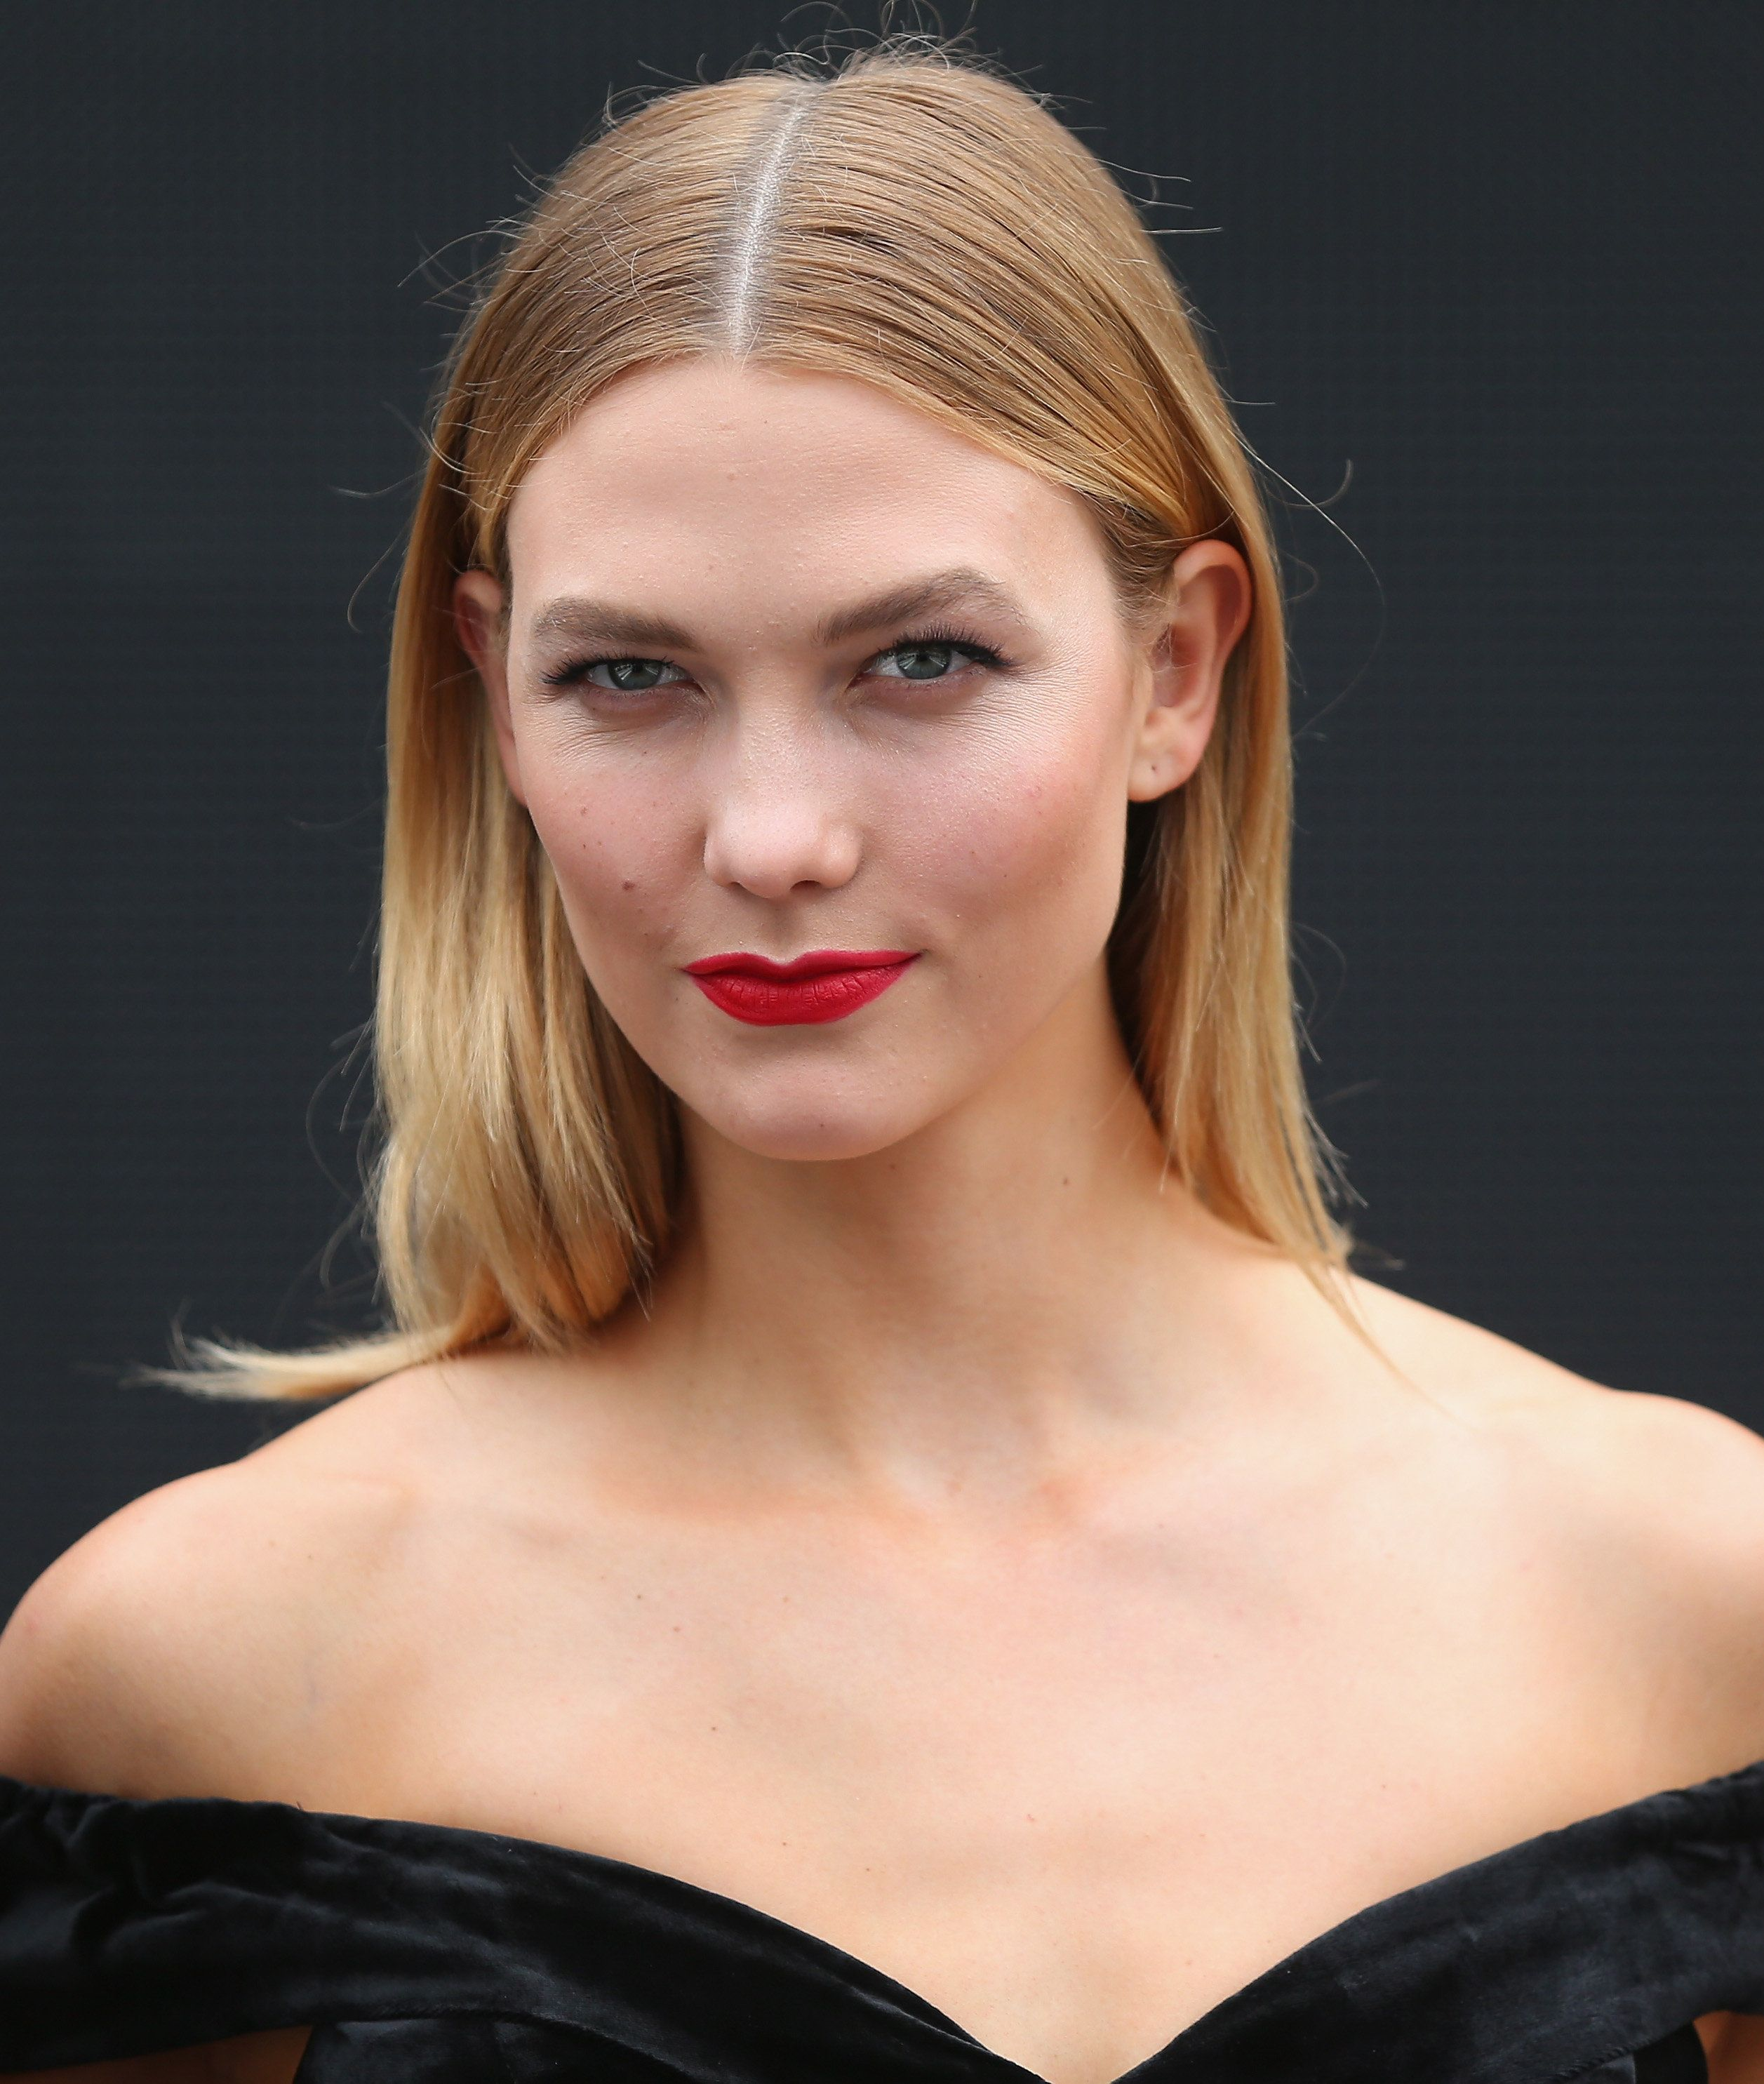 SYDNEY, AUSTRALIA - FEBRUARY 01:  Karlie Kloss poses just after the rehearsal ahead of the David Jones Autumn Winter 2017 Collections Launch at St Mary's Cathedral Precinct on February 1, 2017 in Sydney, Australia.  (Photo by Don Arnold/WireImage)